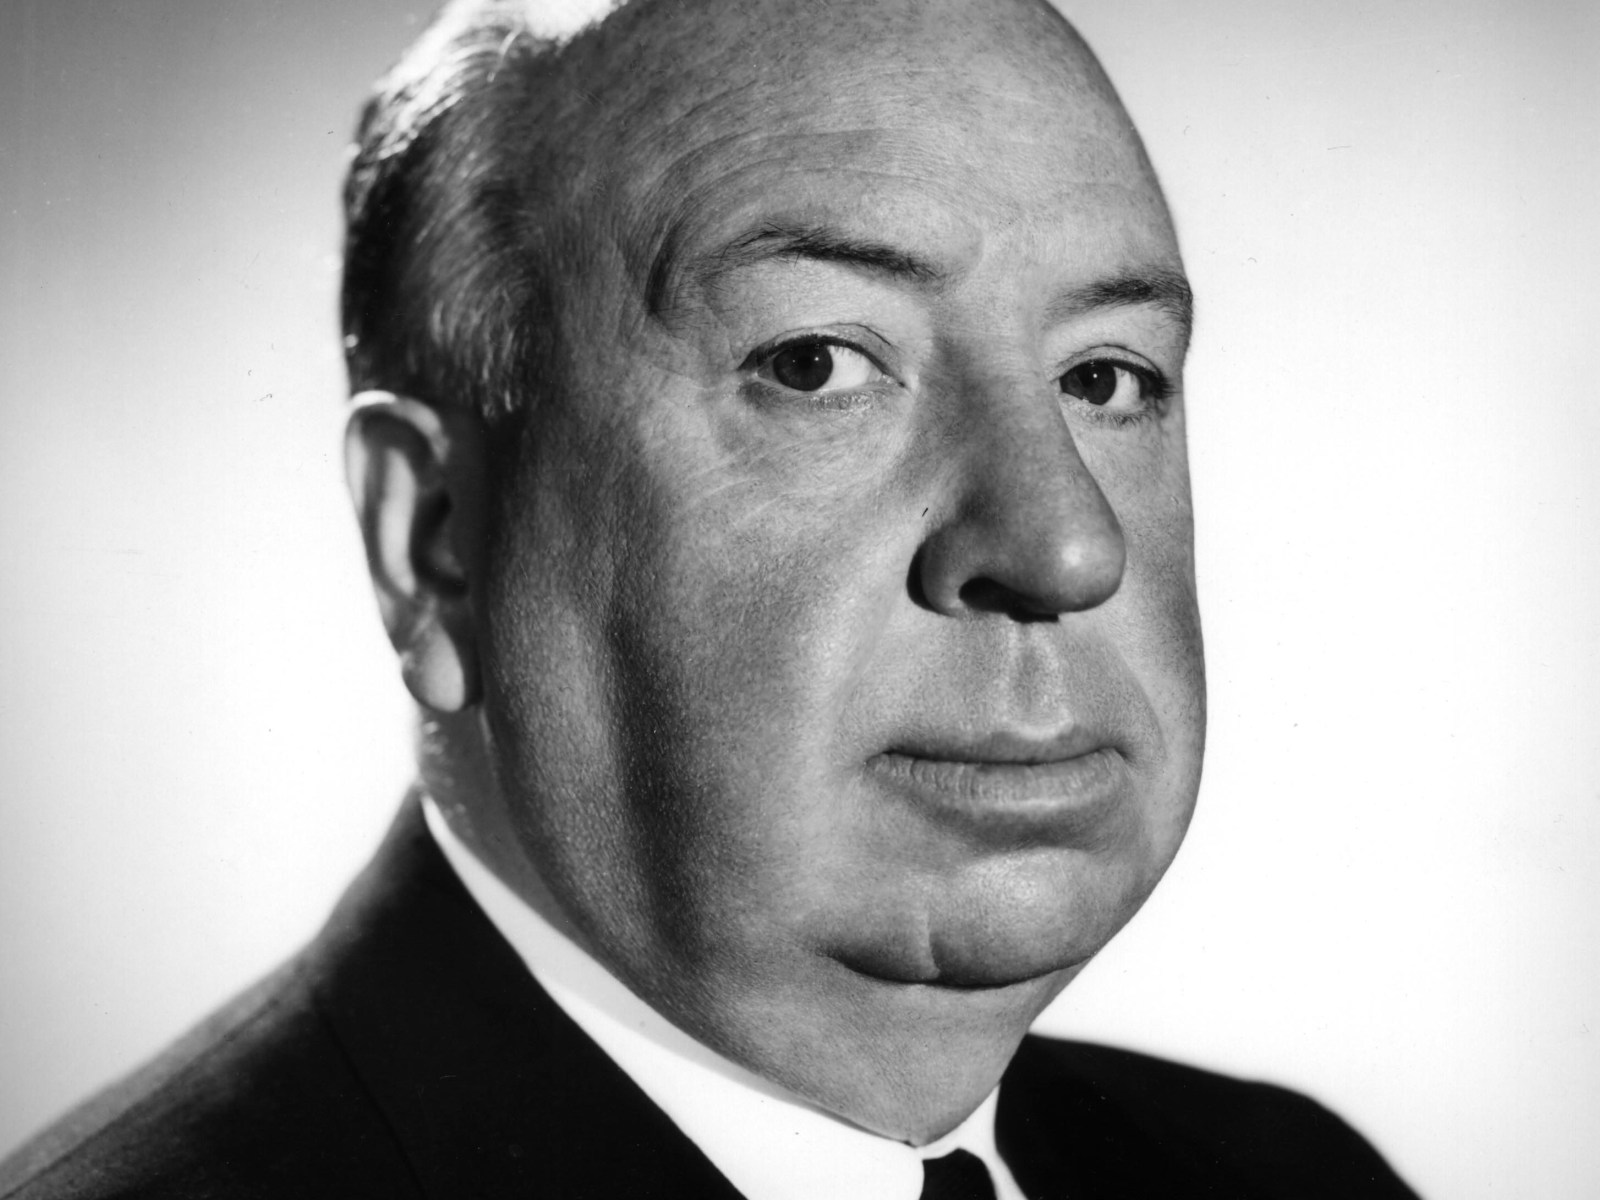 alfred hitchcock and his choice of black and white film Portrait of britsh-born american film director alfred hitchcock (1899 - 1980) at the press conference for a tribute in his honor held at lincoln center, new york, new york, april 20, 1974.